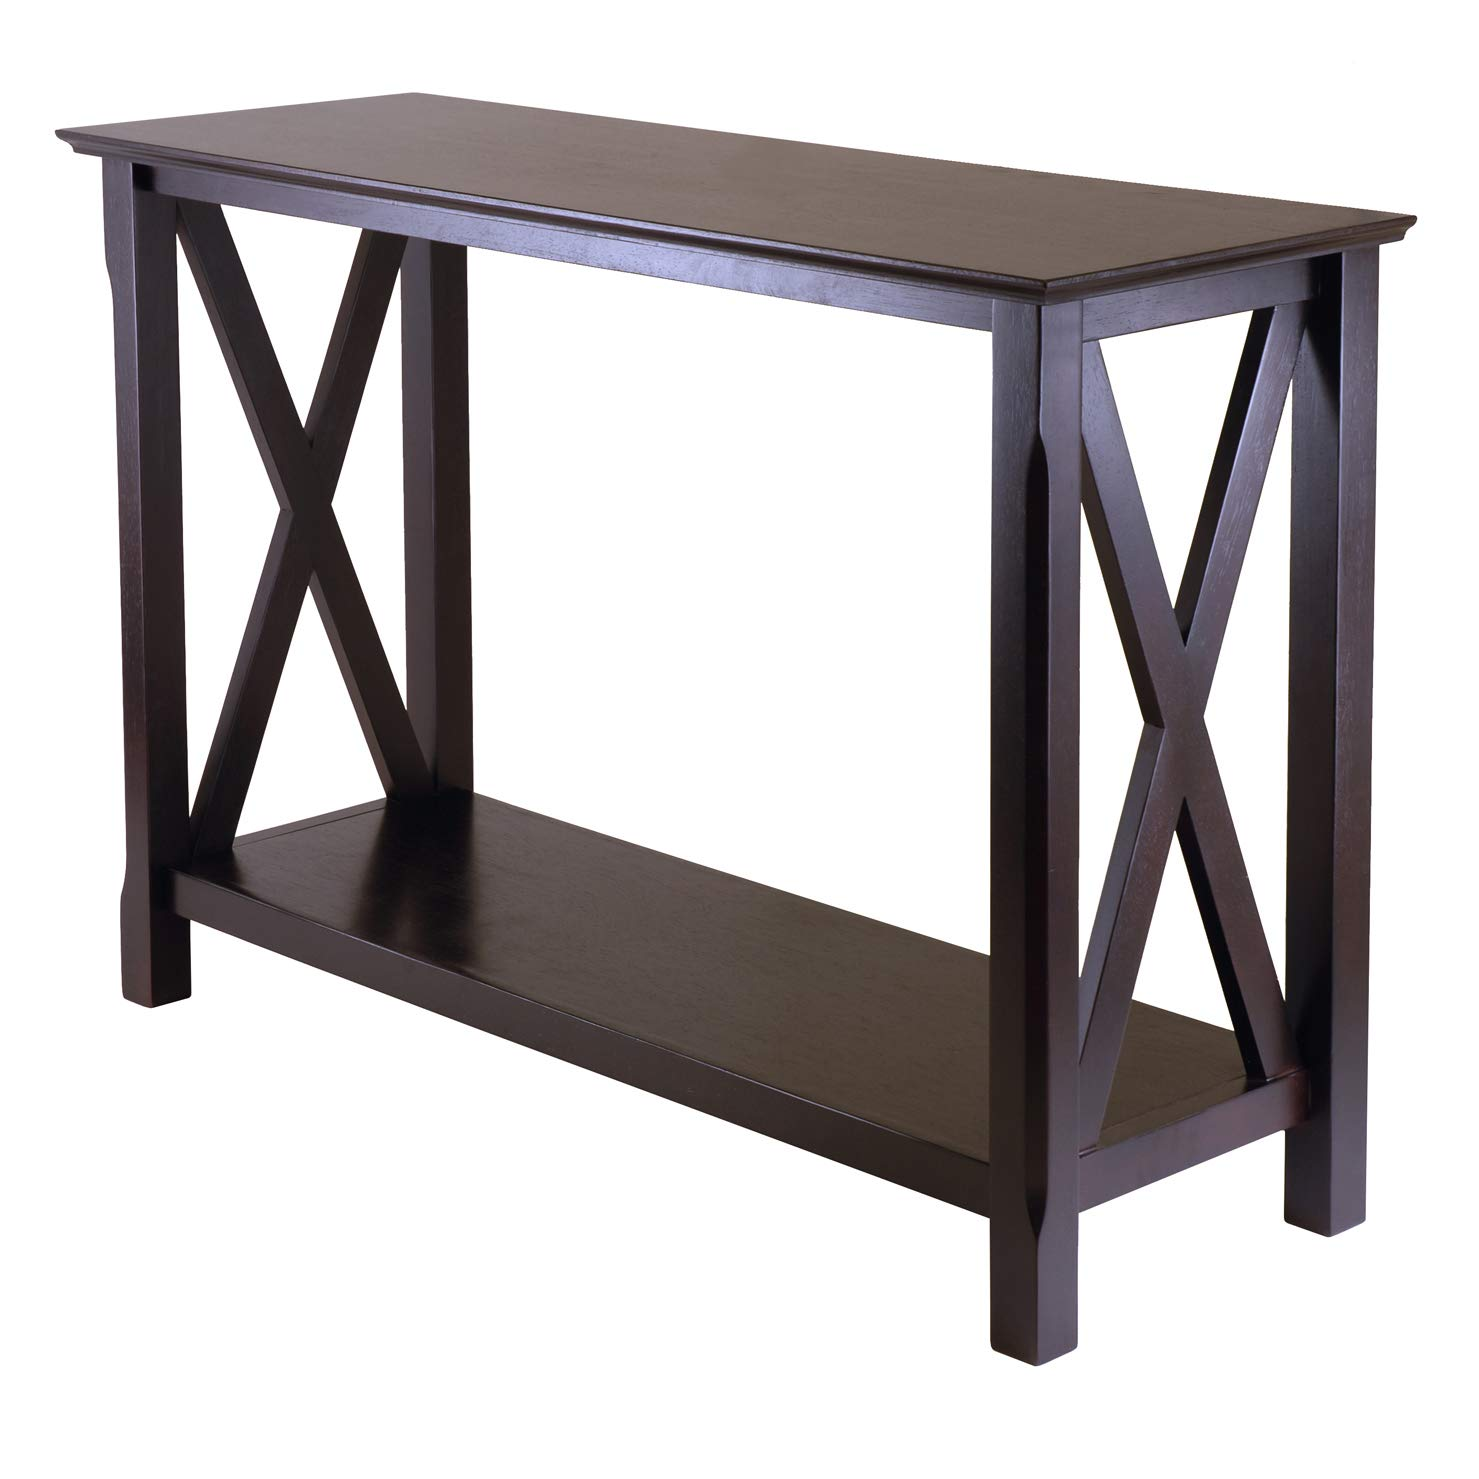 Winsome Wood 40445 Xola Occasional Table, Cappuccino by Winsome Wood